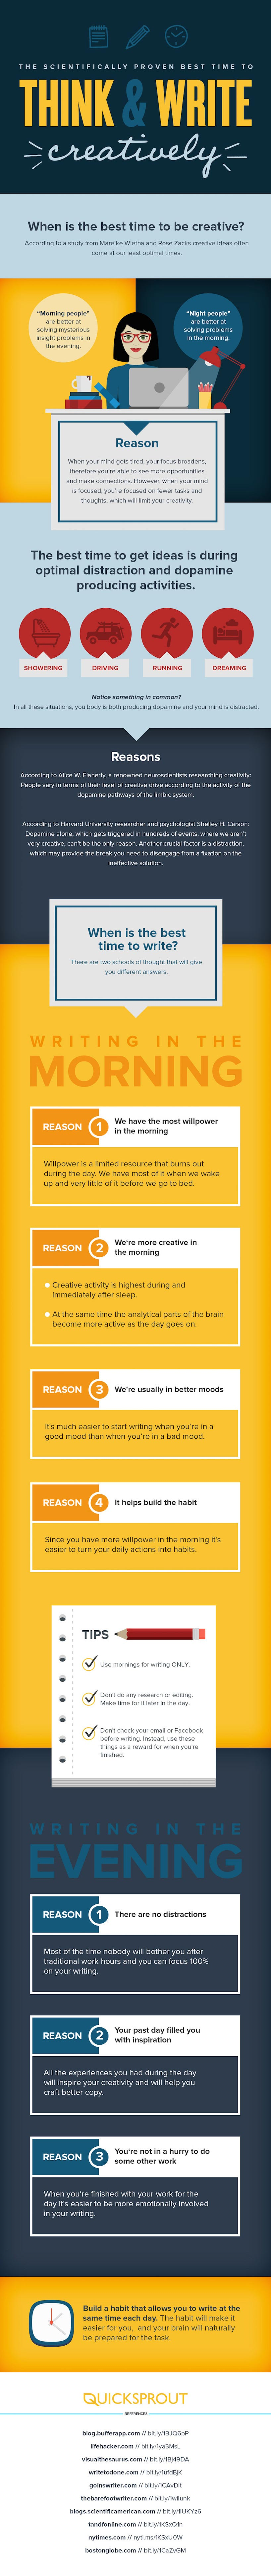 quicksprout Best Time To Write #content #infographic